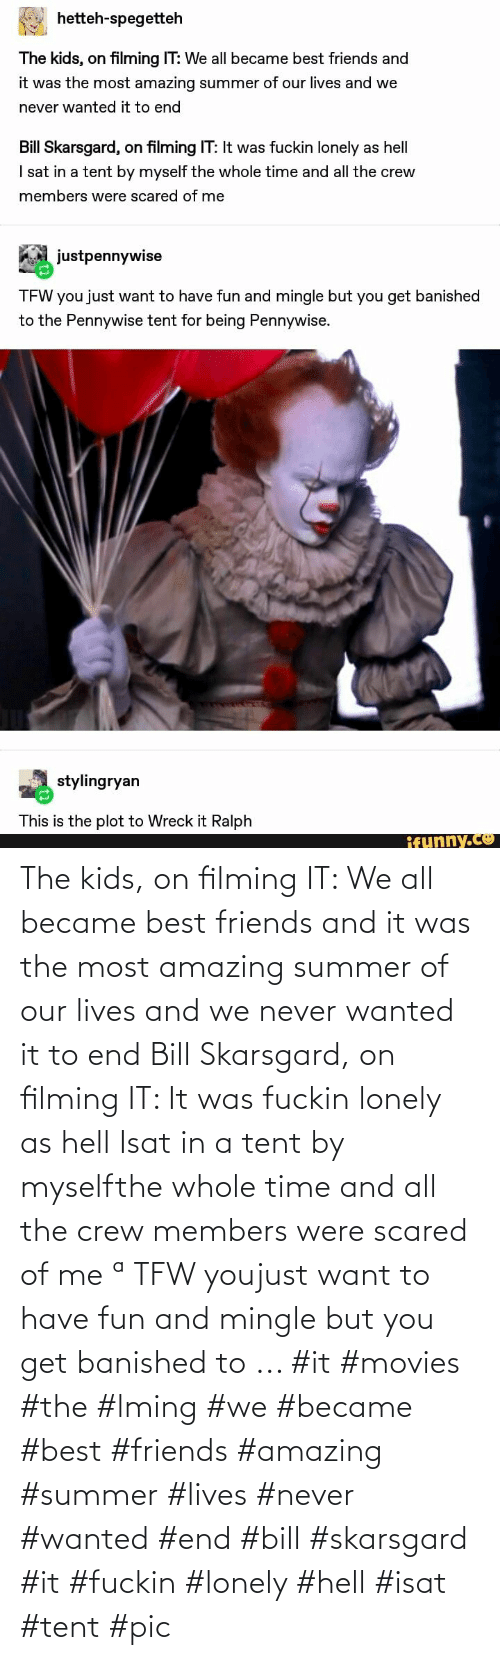 It Was: The kids, on filming IT: We all became best friends and it was the most amazing summer of our lives and we never wanted it to end Bill Skarsgard, on filming IT: It was fuckin lonely as hell Isat in a tent by myselfthe whole time and all the crew members were scared of me ª TFW youjust want to have fun and mingle but you get banished to ... #it #movies #the #lming #we #became #best #friends #amazing #summer #lives #never #wanted #end #bill #skarsgard #it #fuckin #lonely #hell #isat #tent #pic